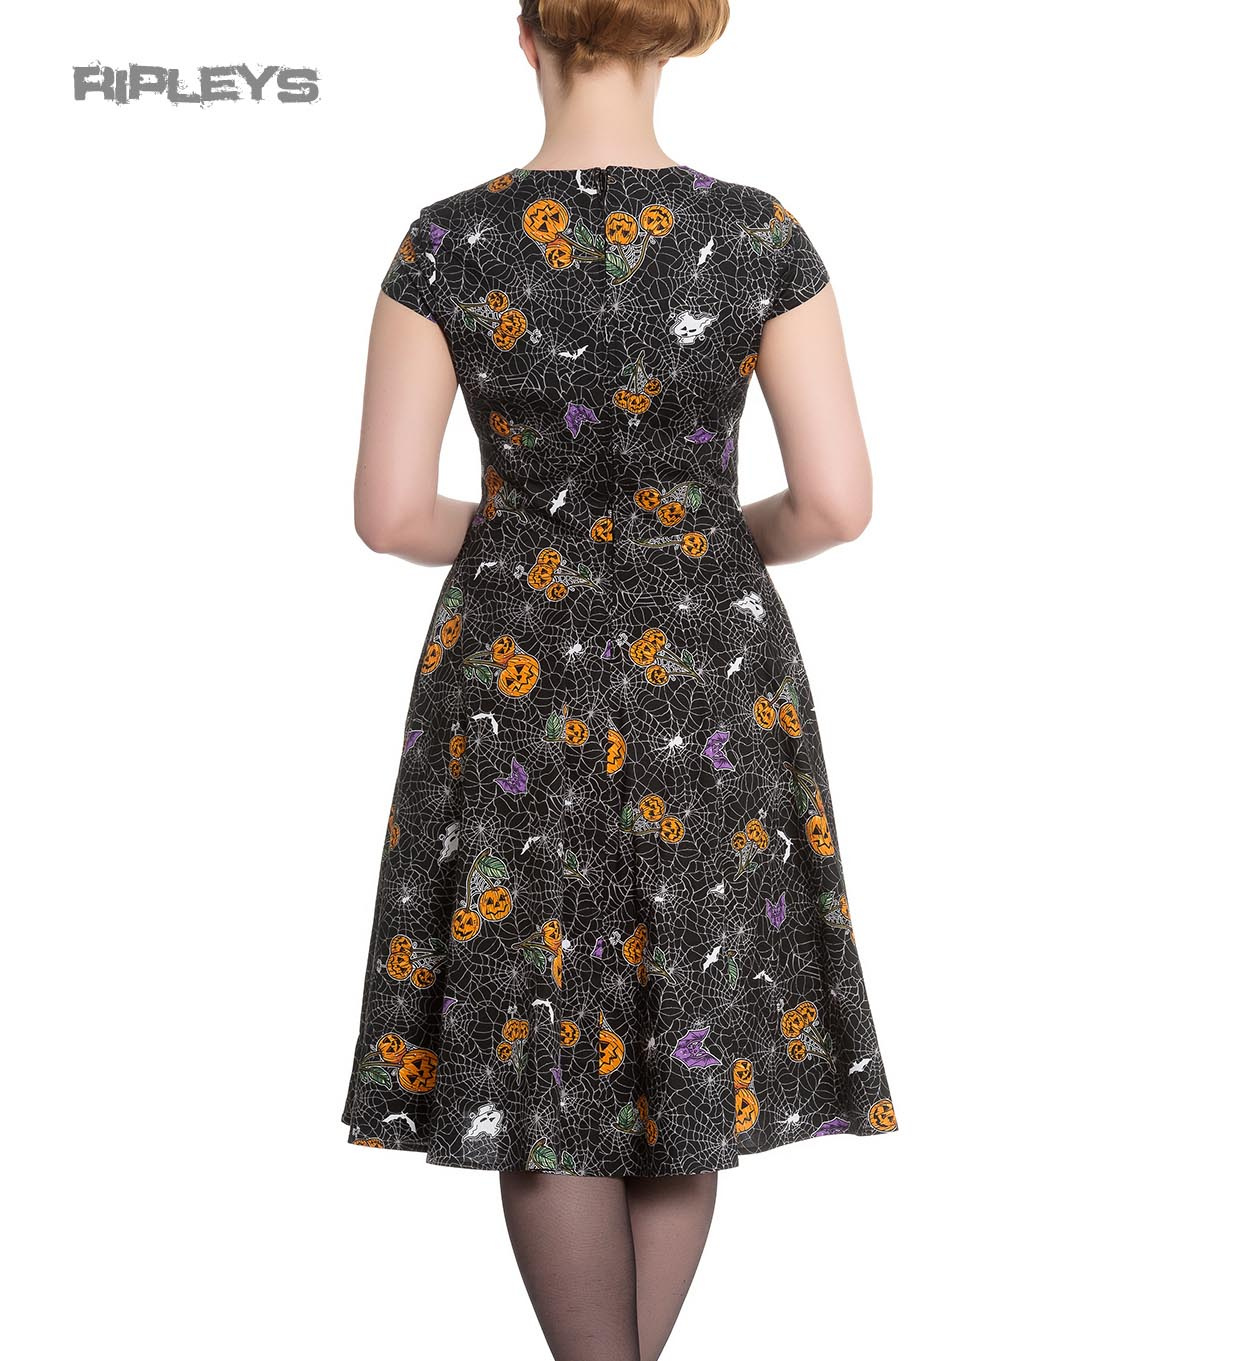 Hell-Bunny-Black-Pinup-50s-Goth-Webs-Dress-HARLOW-Halloween-All-Sizes thumbnail 4